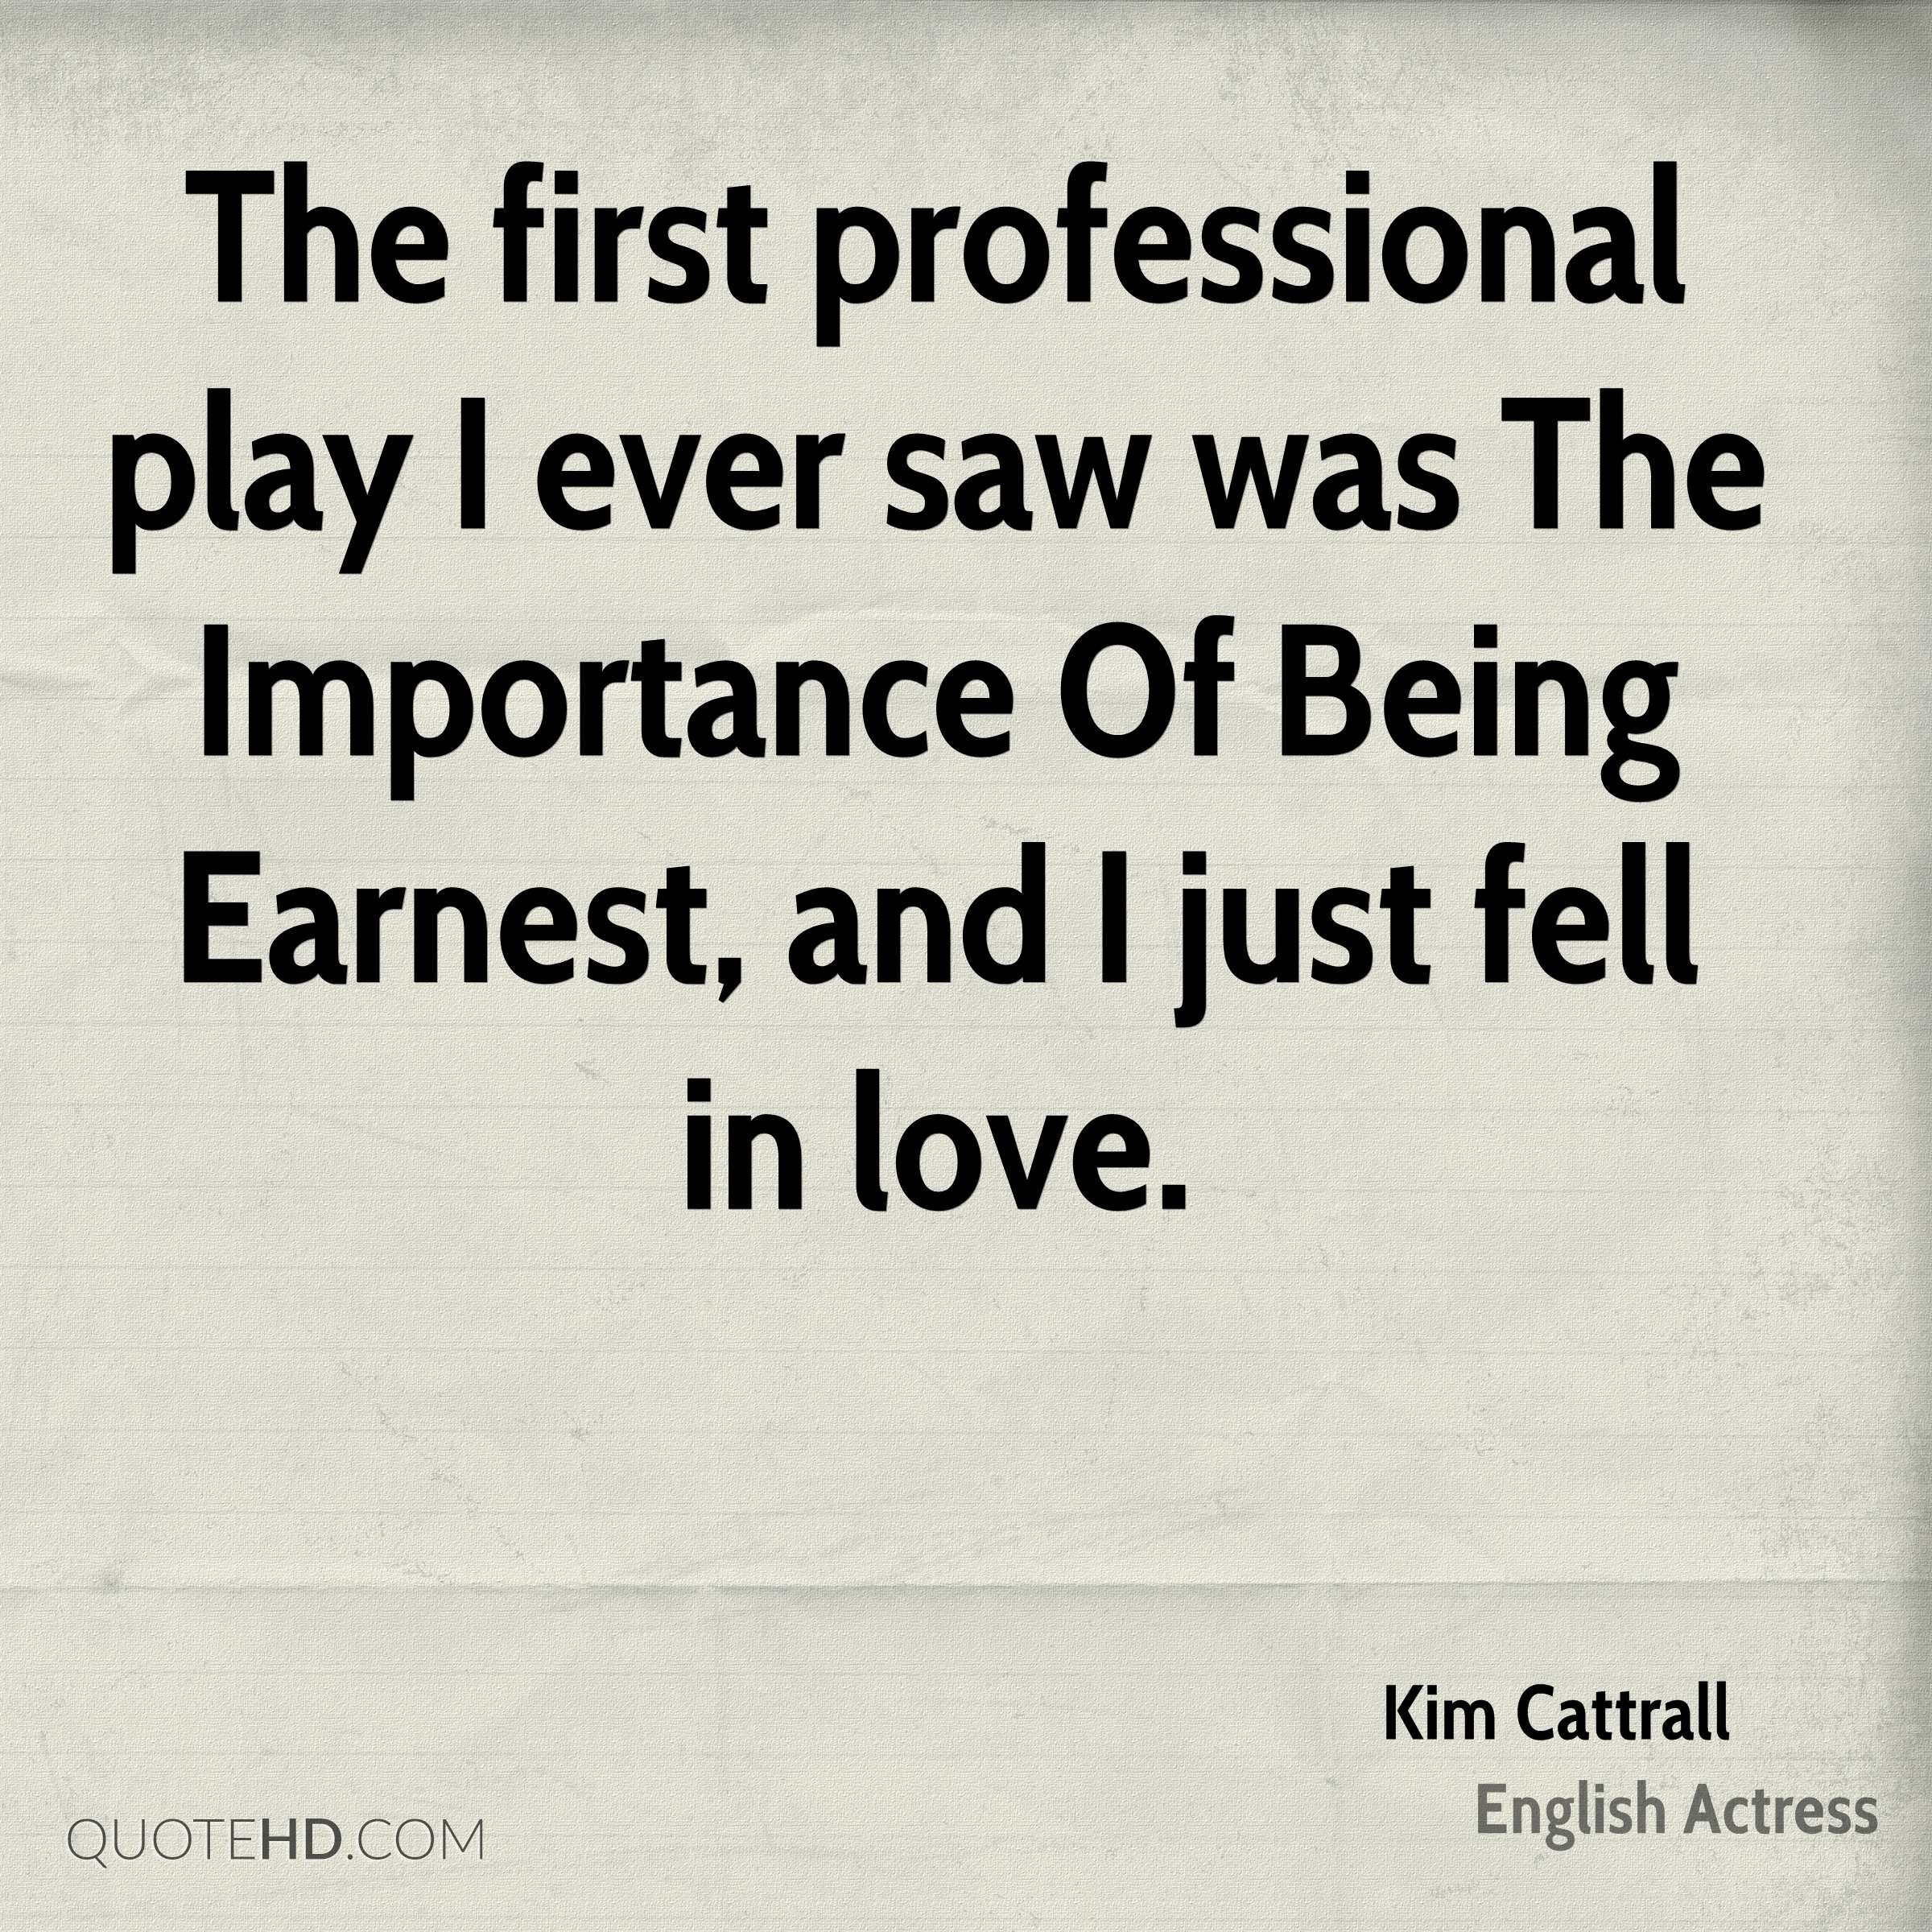 The first professional play I ever saw was The Importance Of Being Earnest, and I just fell in love.